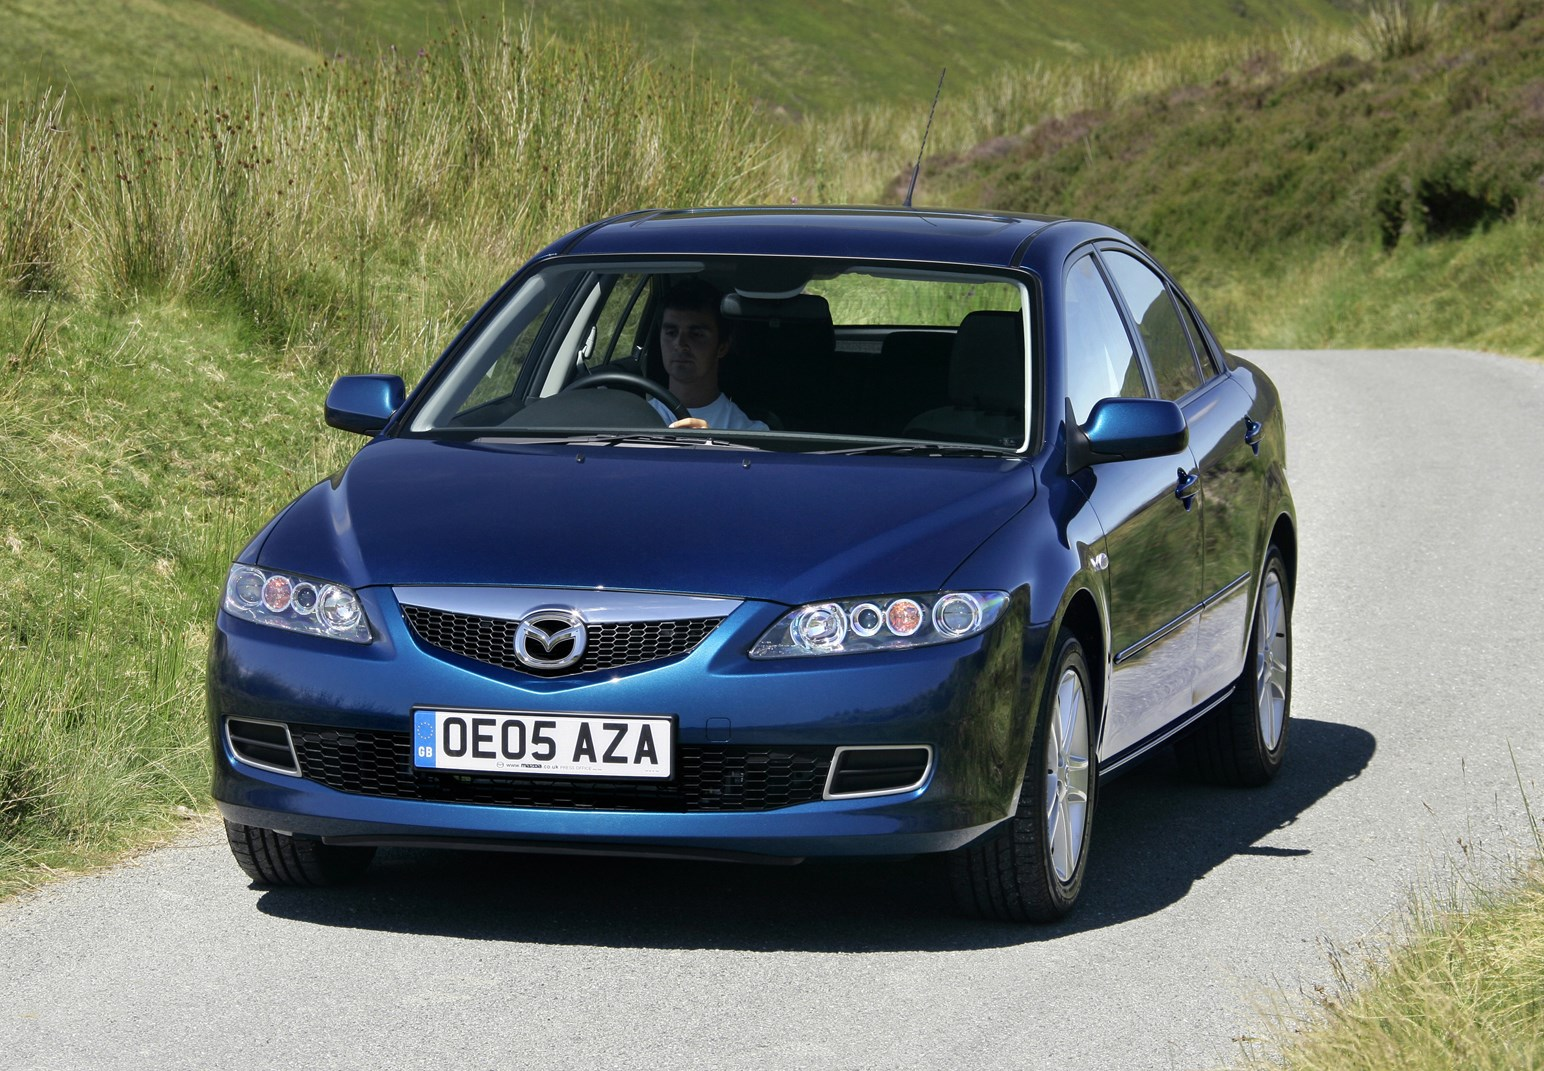 View all images of the mazda 6 hatchback 02 07